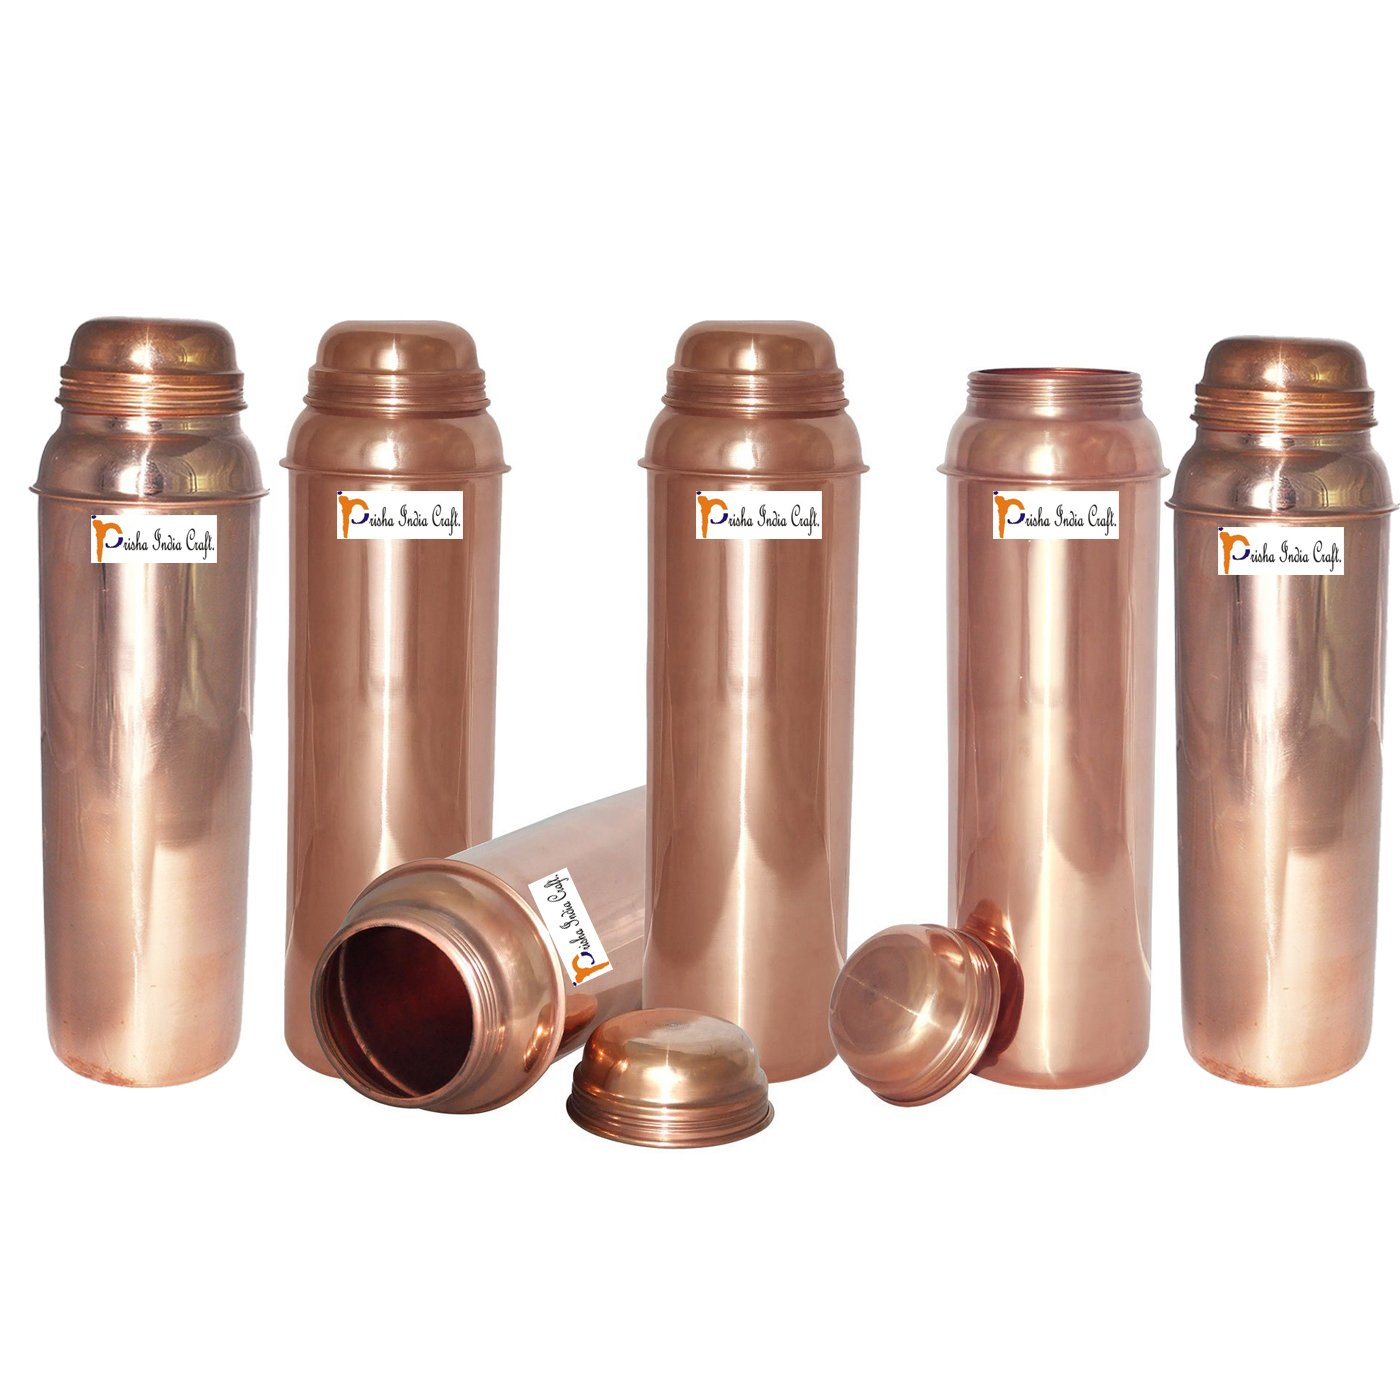 850ml / 28.74oz - Set of 6 - Prisha India Craft ® Pure Copper Water Bottle for Health Benefits - Water Pitcher Bottles - Handmade Christmas Gift Item